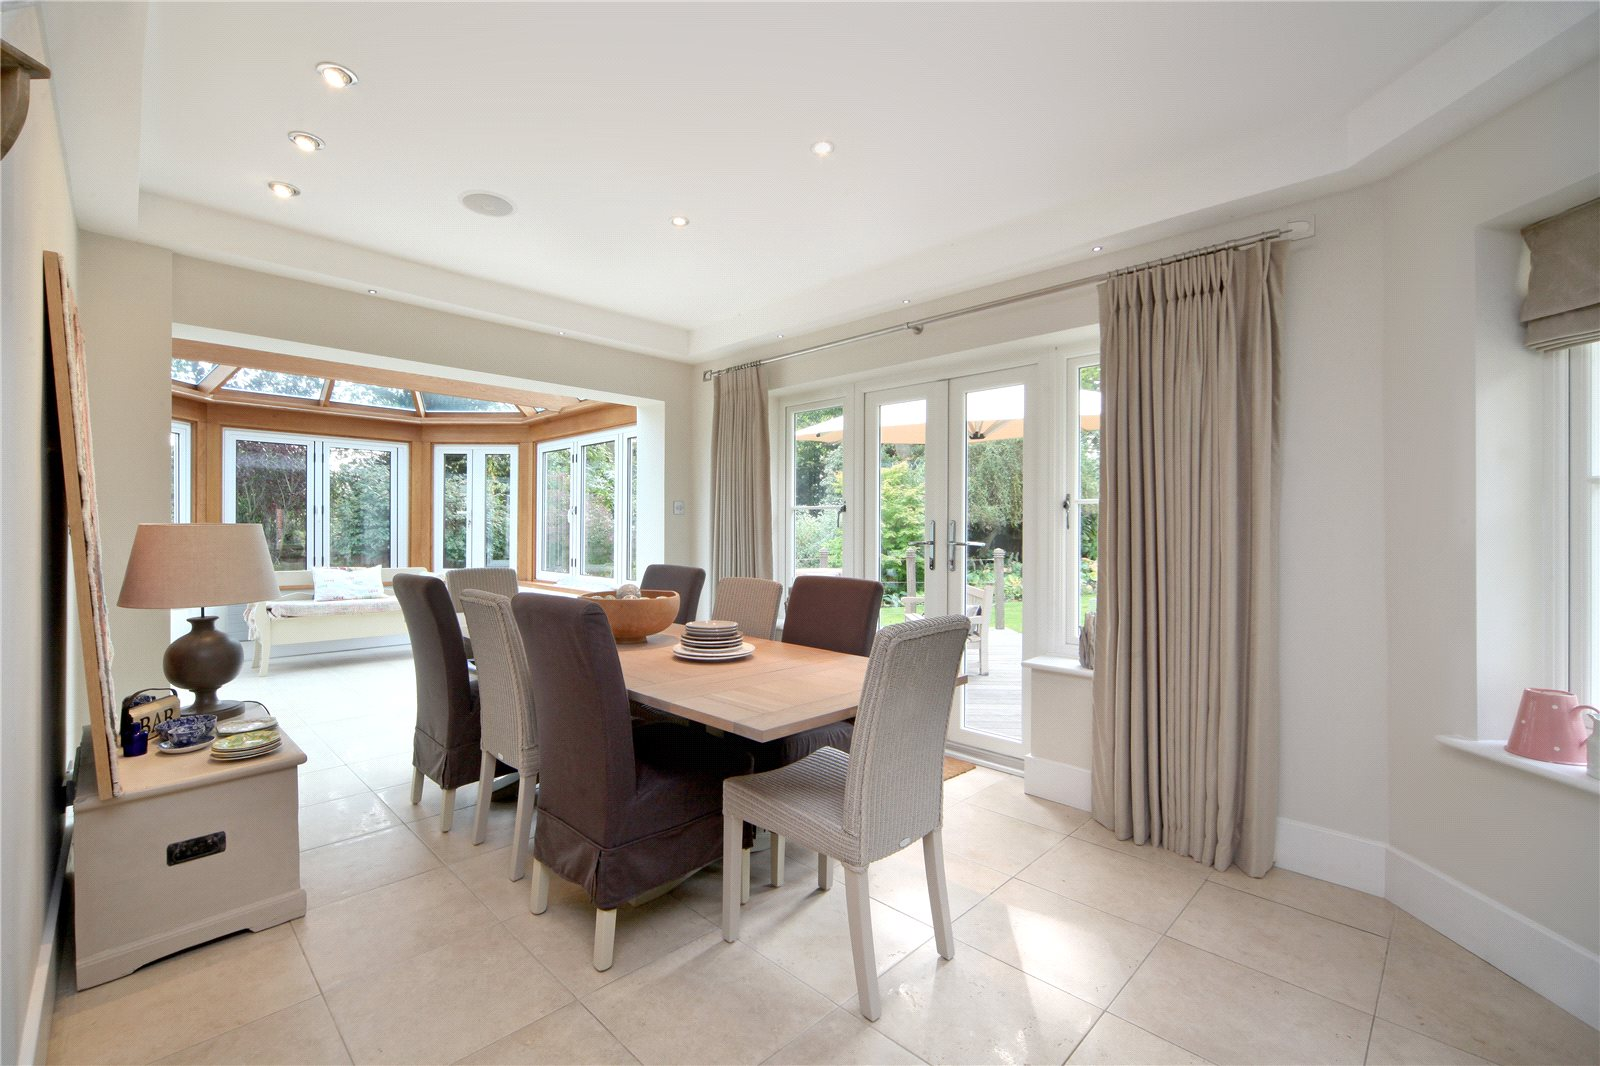 Additional photo for property listing at Priory Road, Sunningdale, Berkshire, SL5 Sunningdale, Angleterre